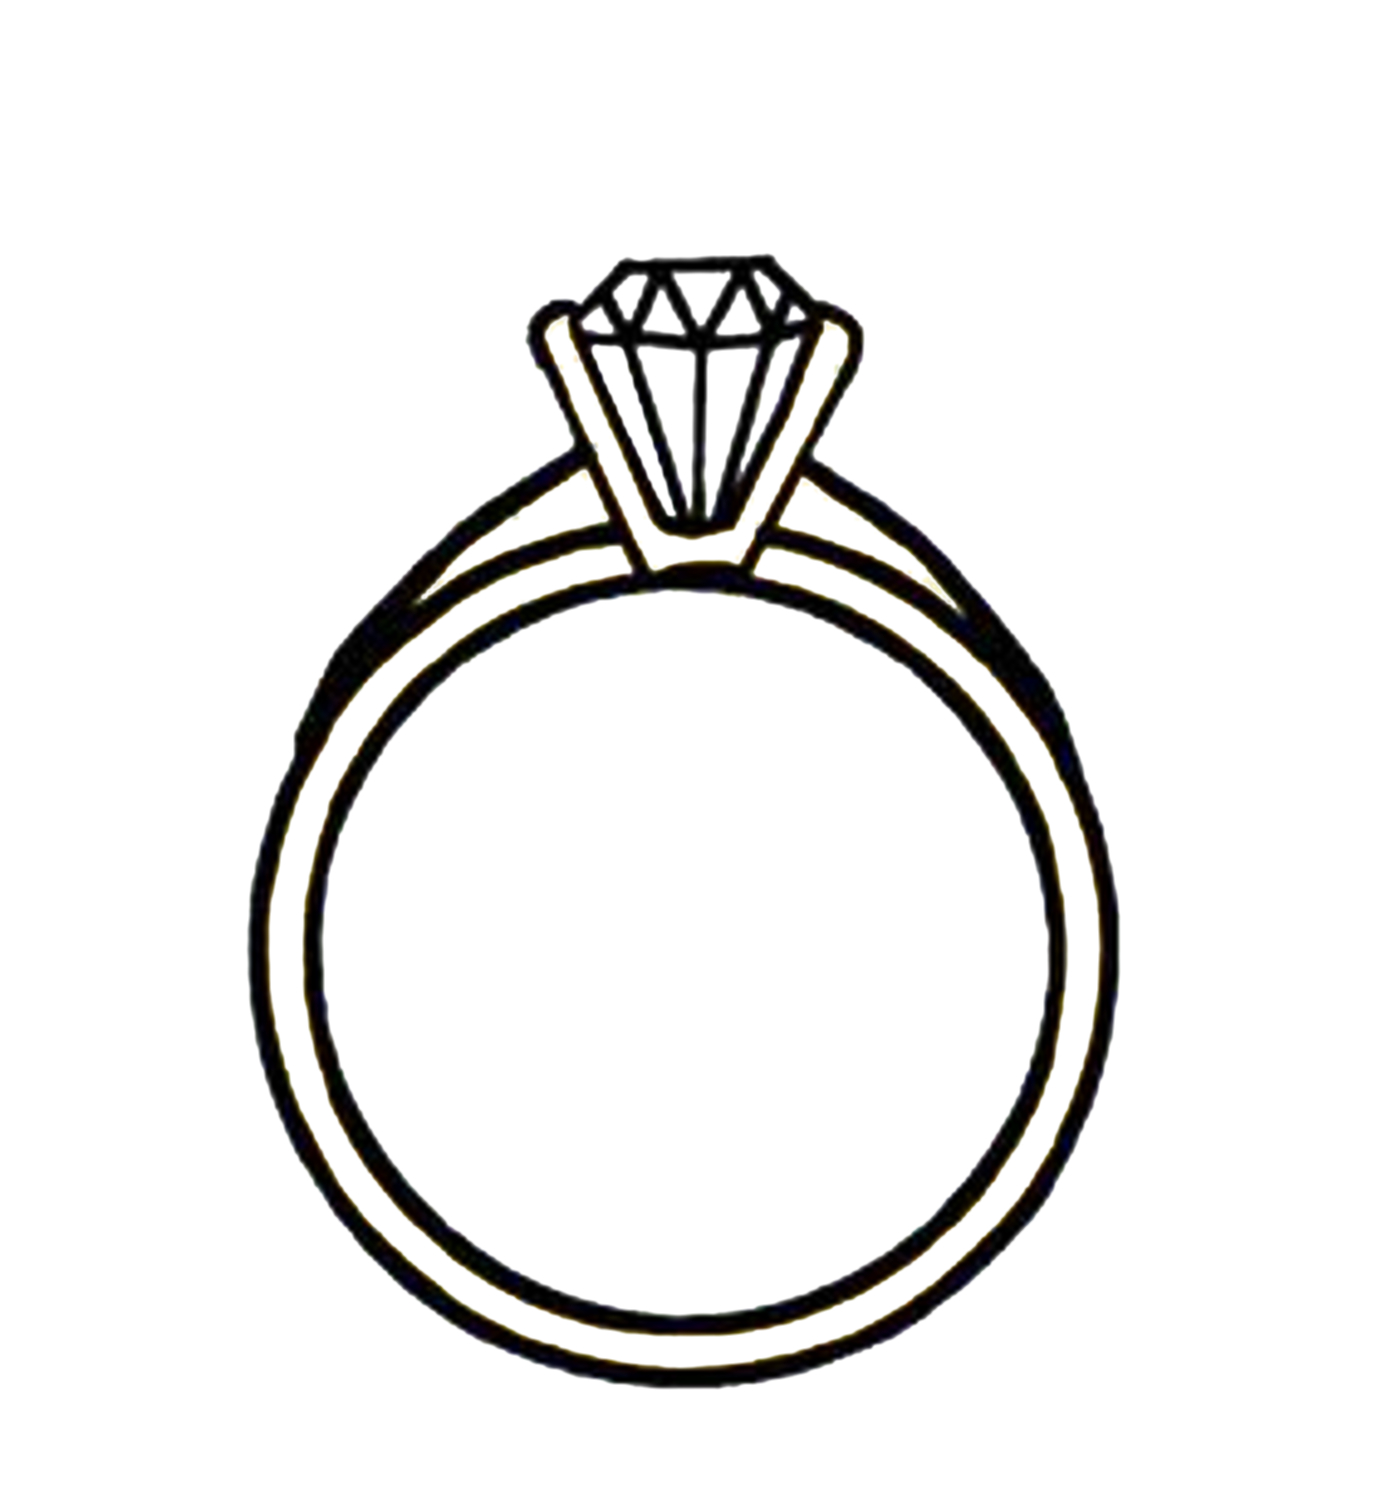 ring clipart black and white-ring clipart black and white-2